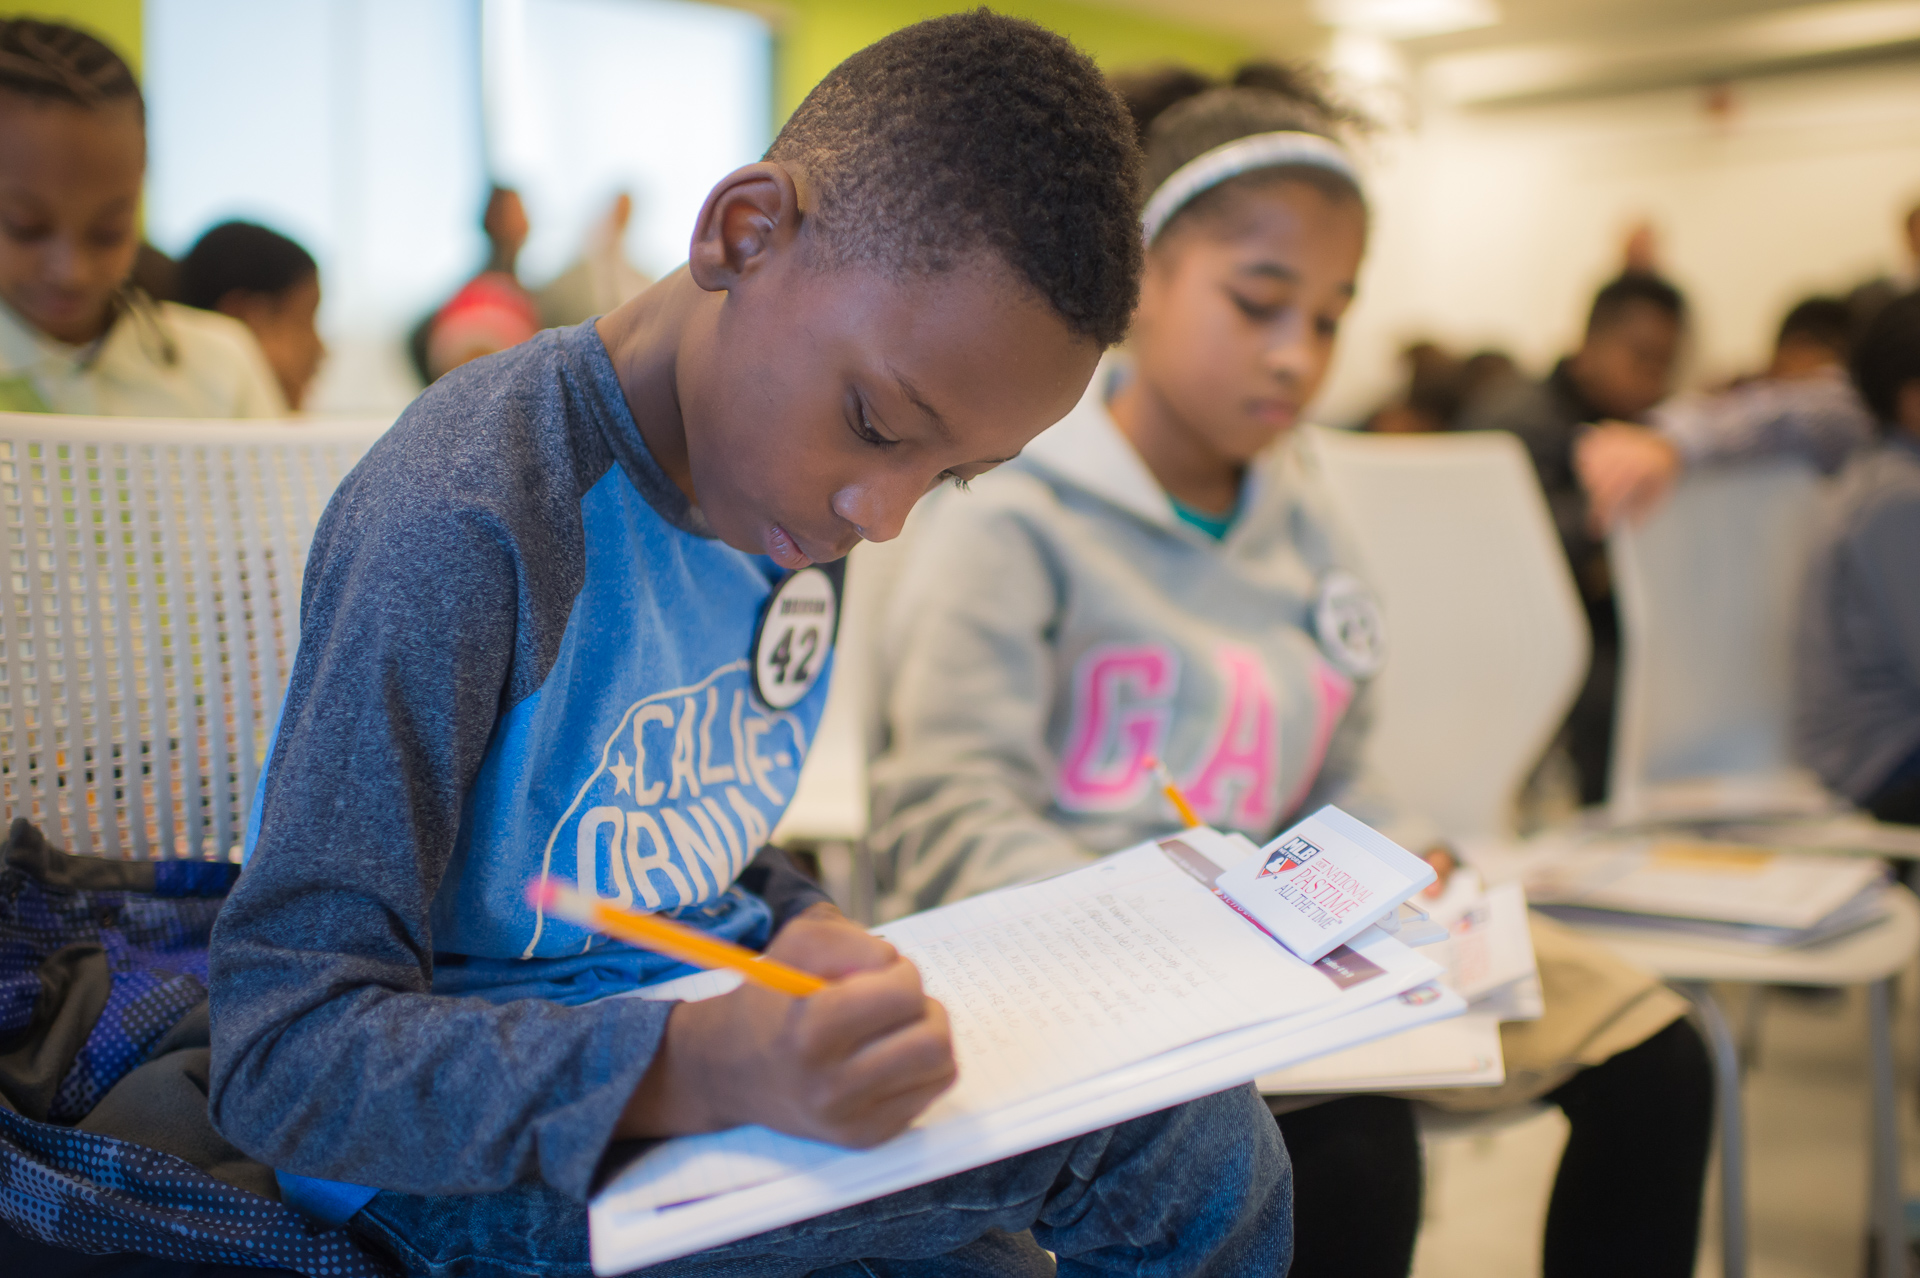 breaking barriers essay contest - jackie robinson